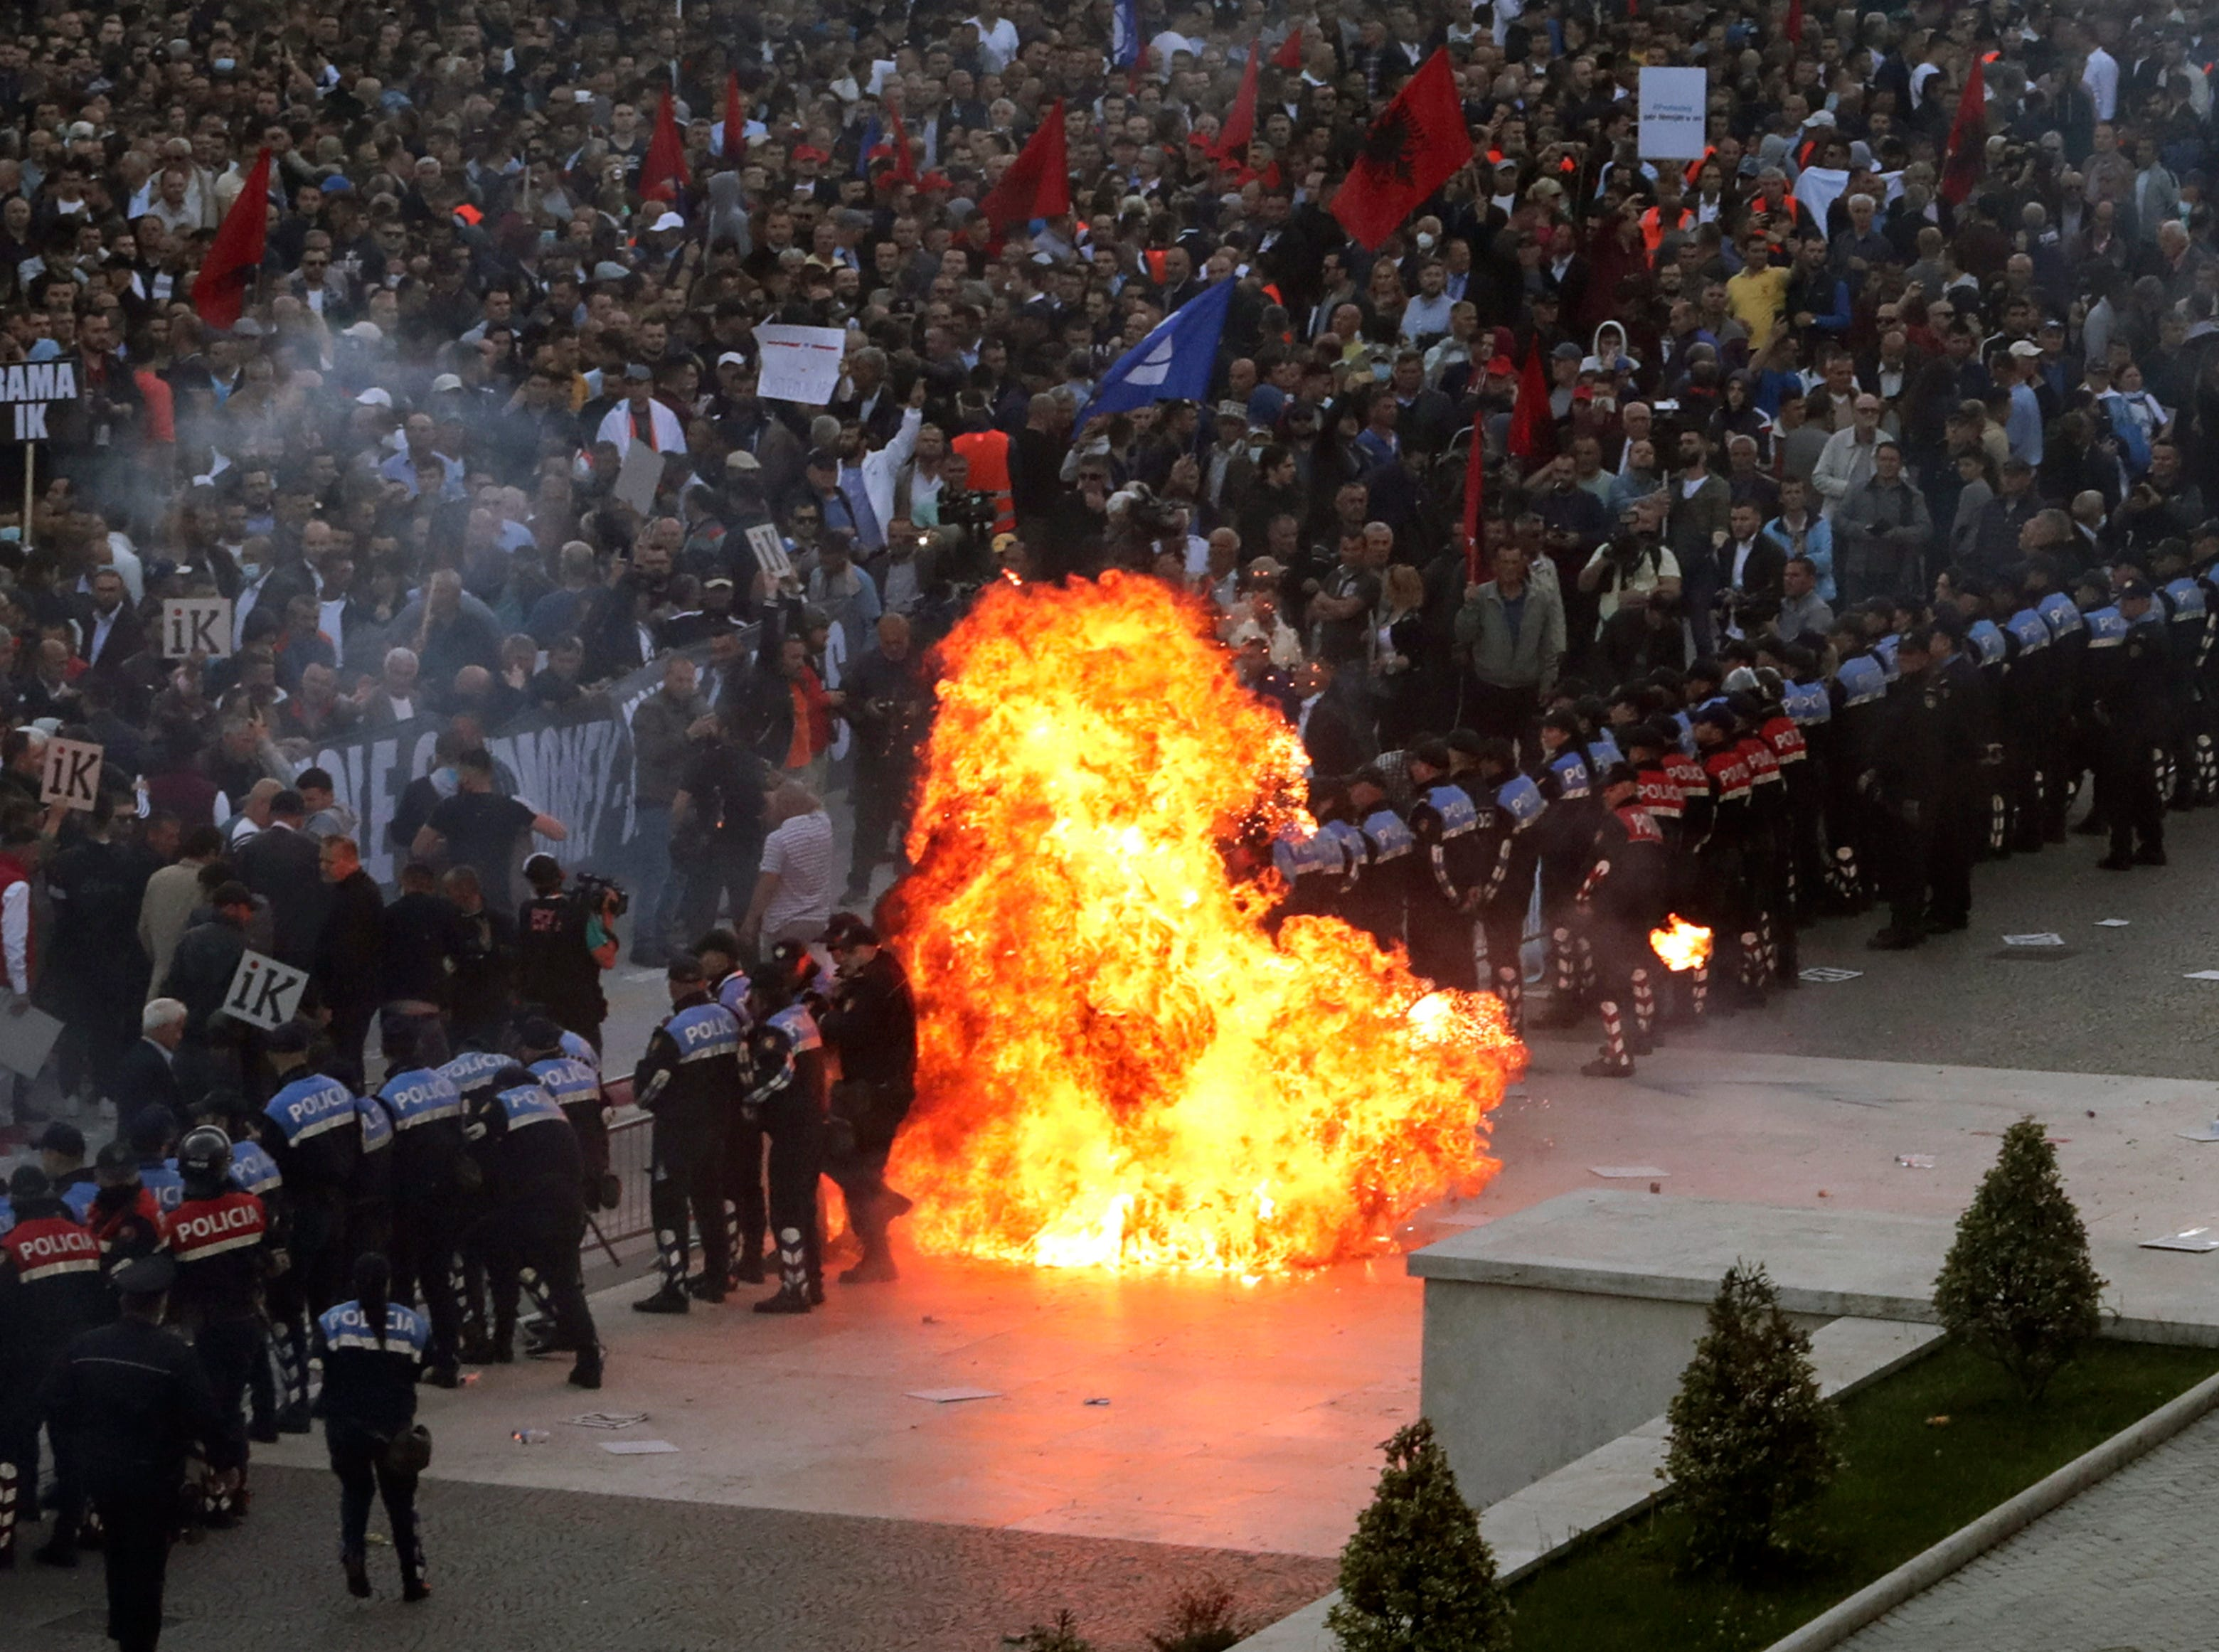 Flames from a petrol bomb thrown toward a police line blocking protesters taking part in an anti-government rally in Tirana, Saturday, May 11, 2019. Protesters demand the Socialist government to resign and call an early parliamentary election.